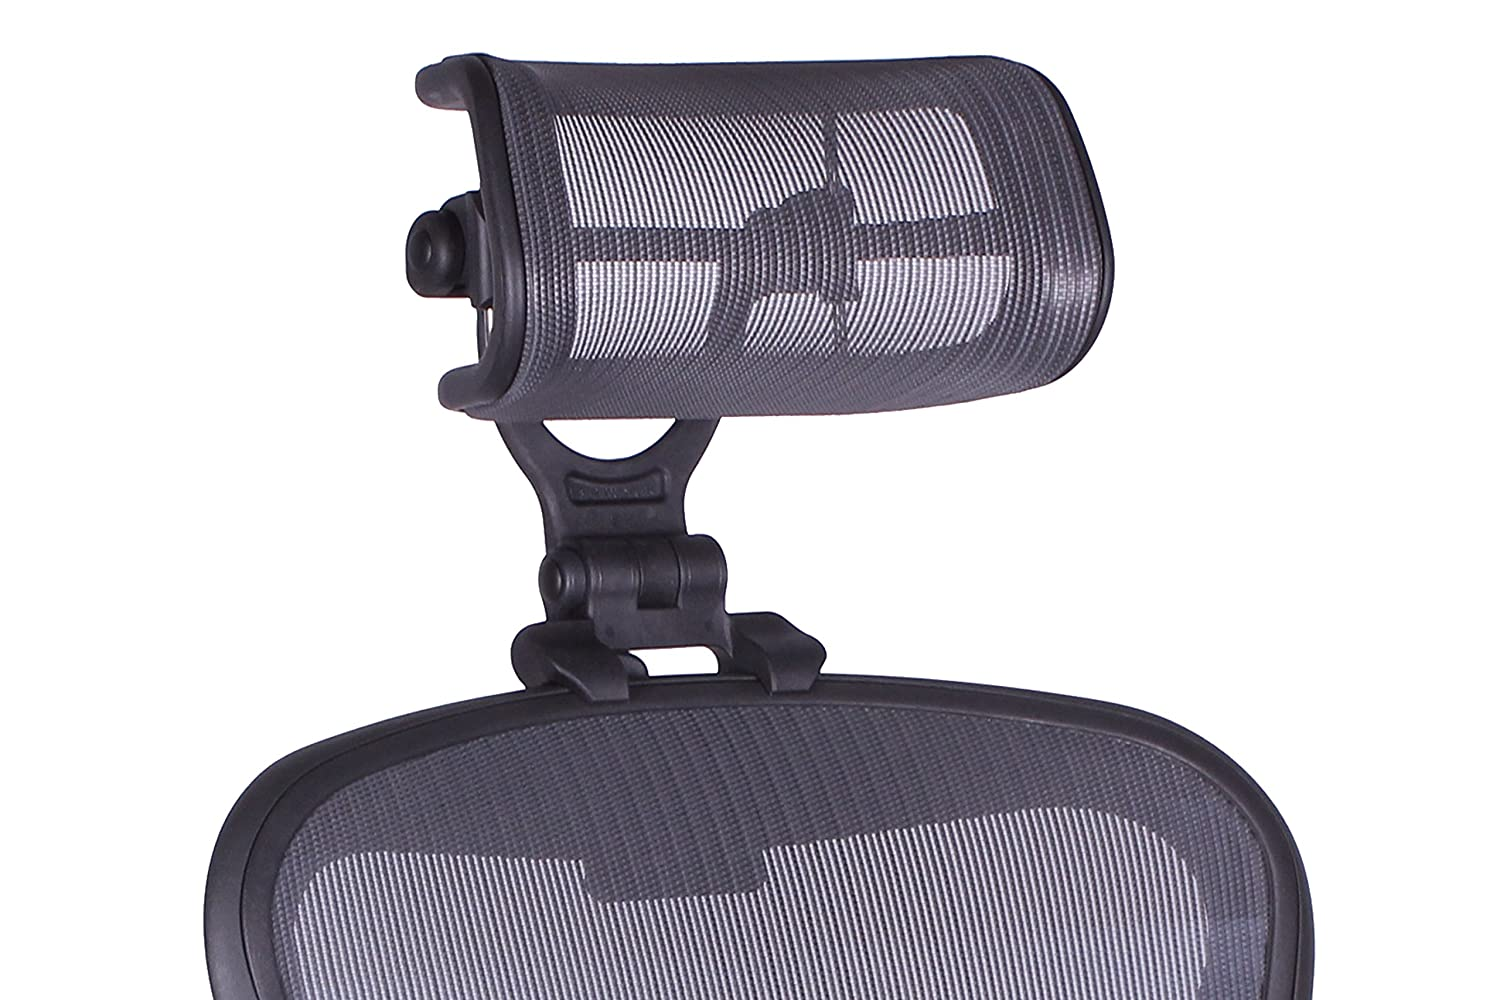 huge selection of bc8e3 03bcb The Original Headrest for The Herman Miller Aeron Chair H4 Graphite |  Colors and Mesh Match Remastered Aeron Chair 2017 and Newer Models